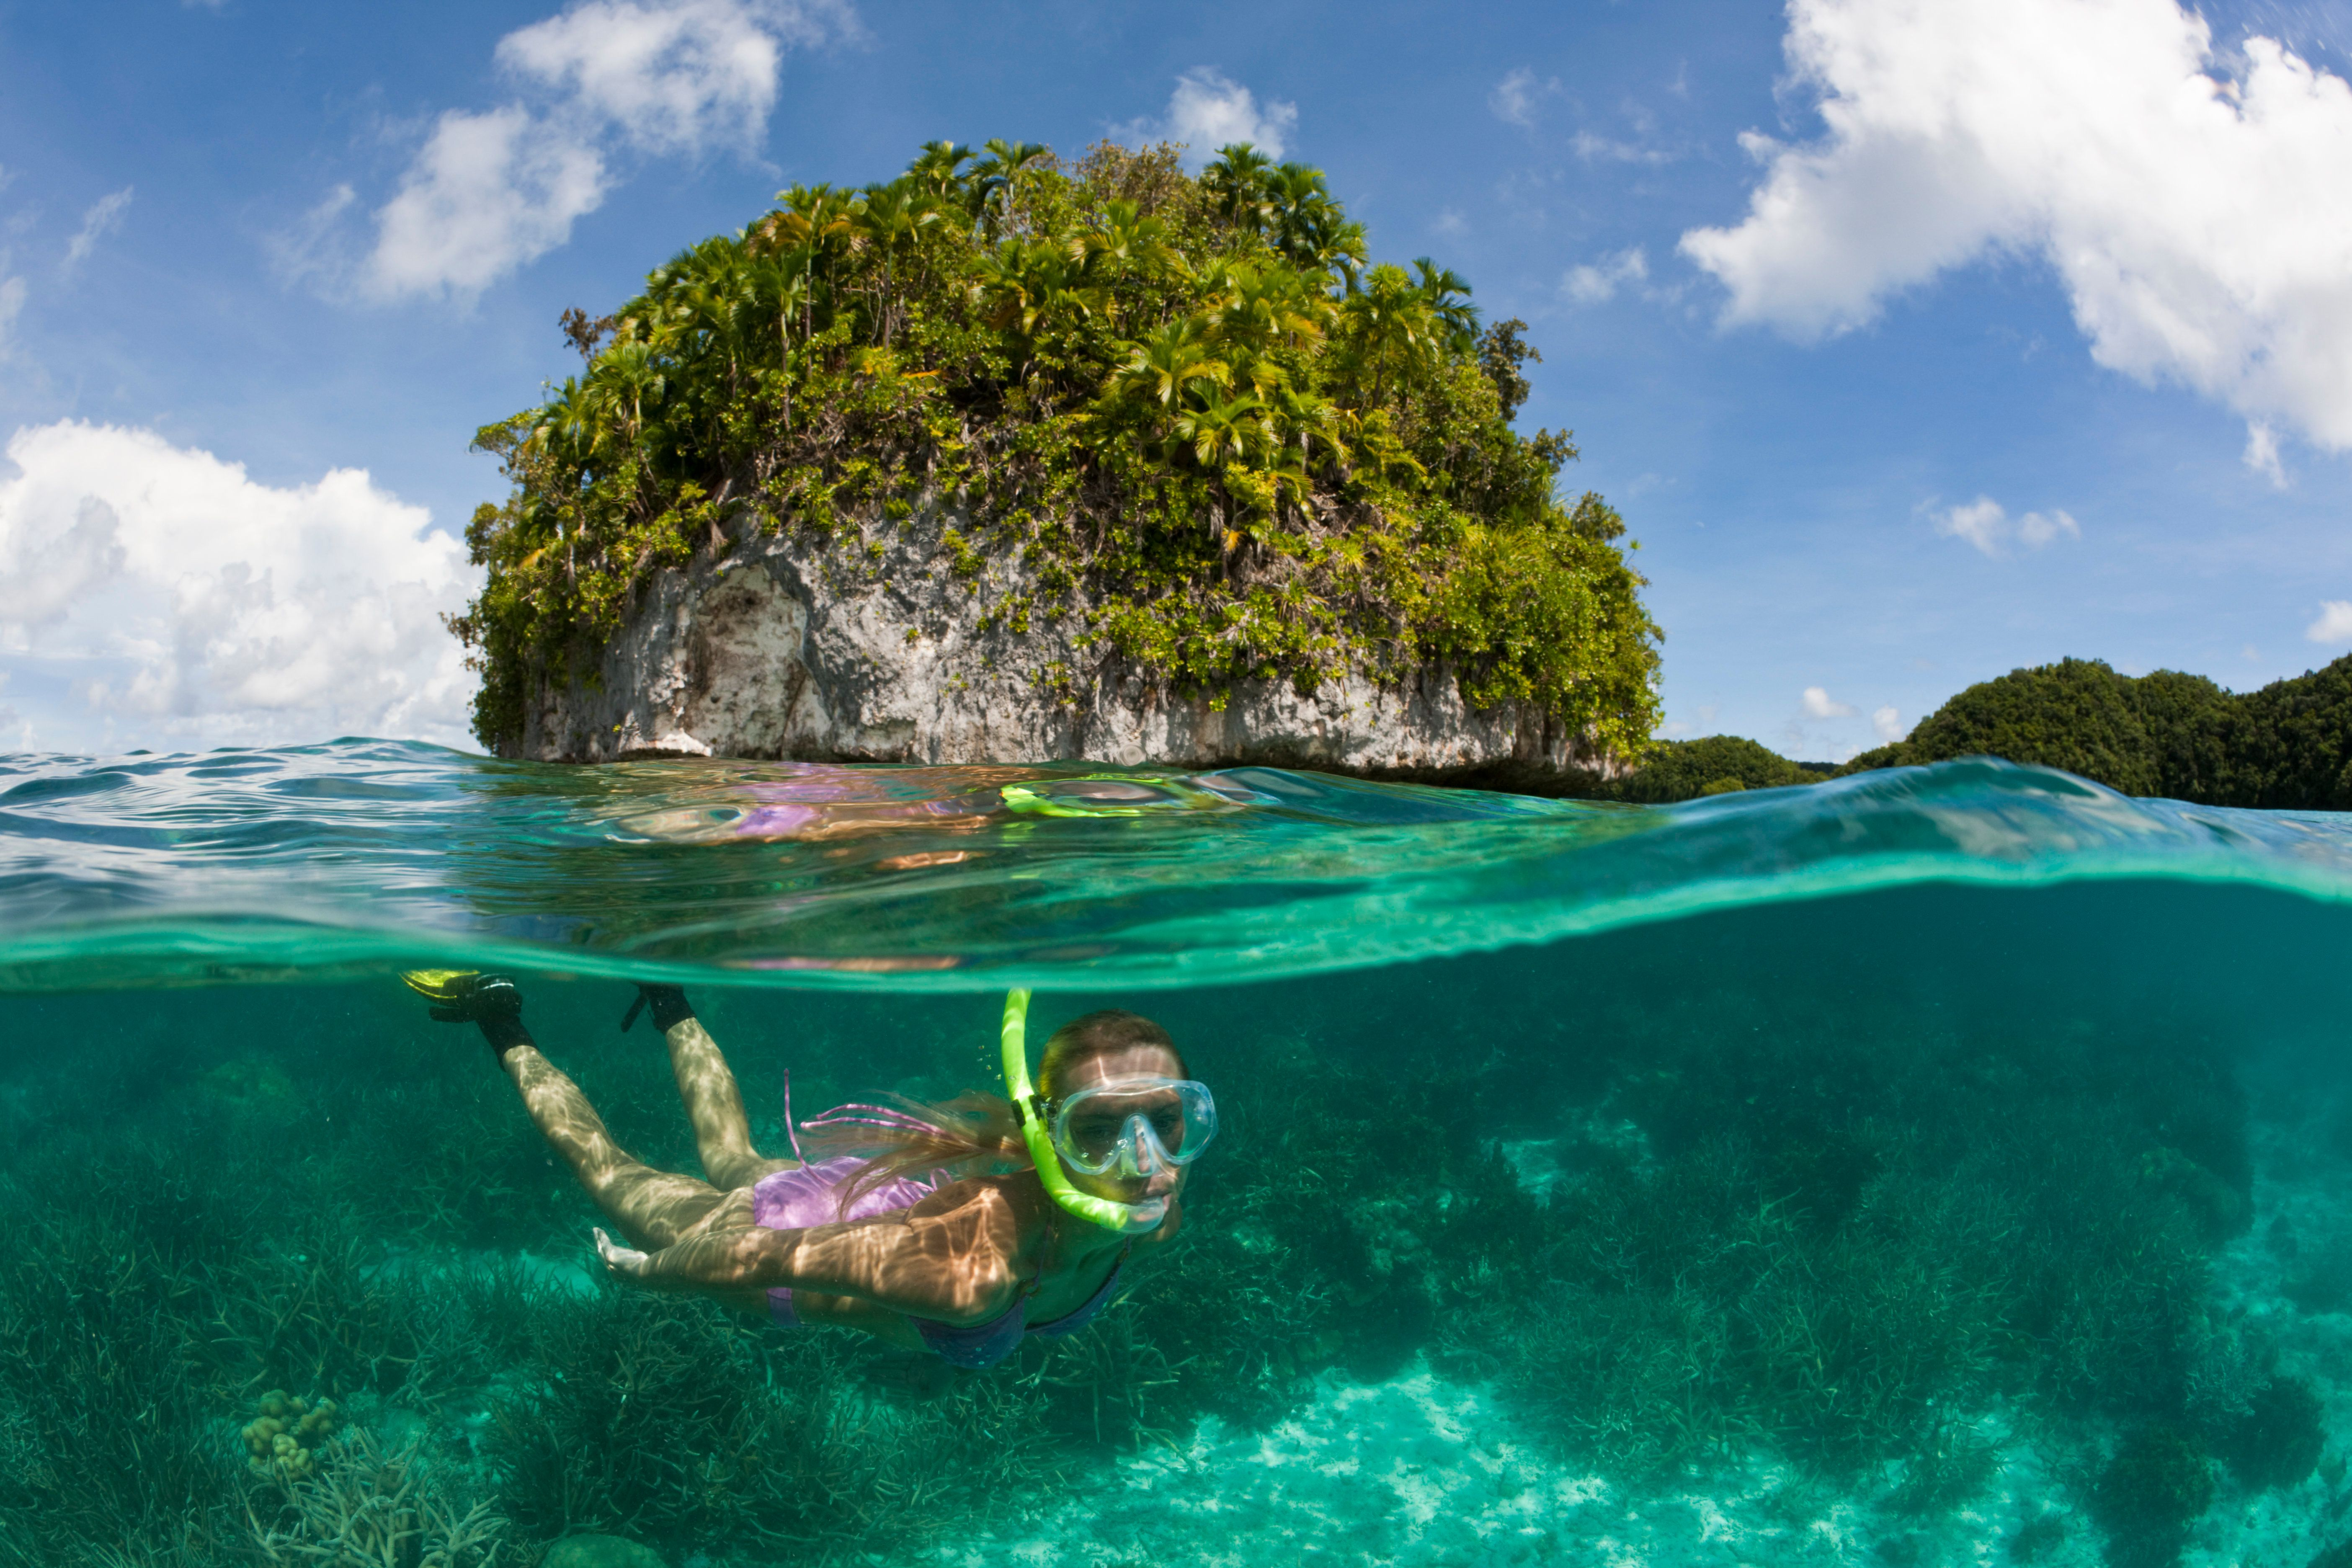 (GERMANY OUT) Tourist snorkeling at Palau, Micronesia, Palau  (Photo by Reinhard Dirscherl/ullstein bild via Getty Images)